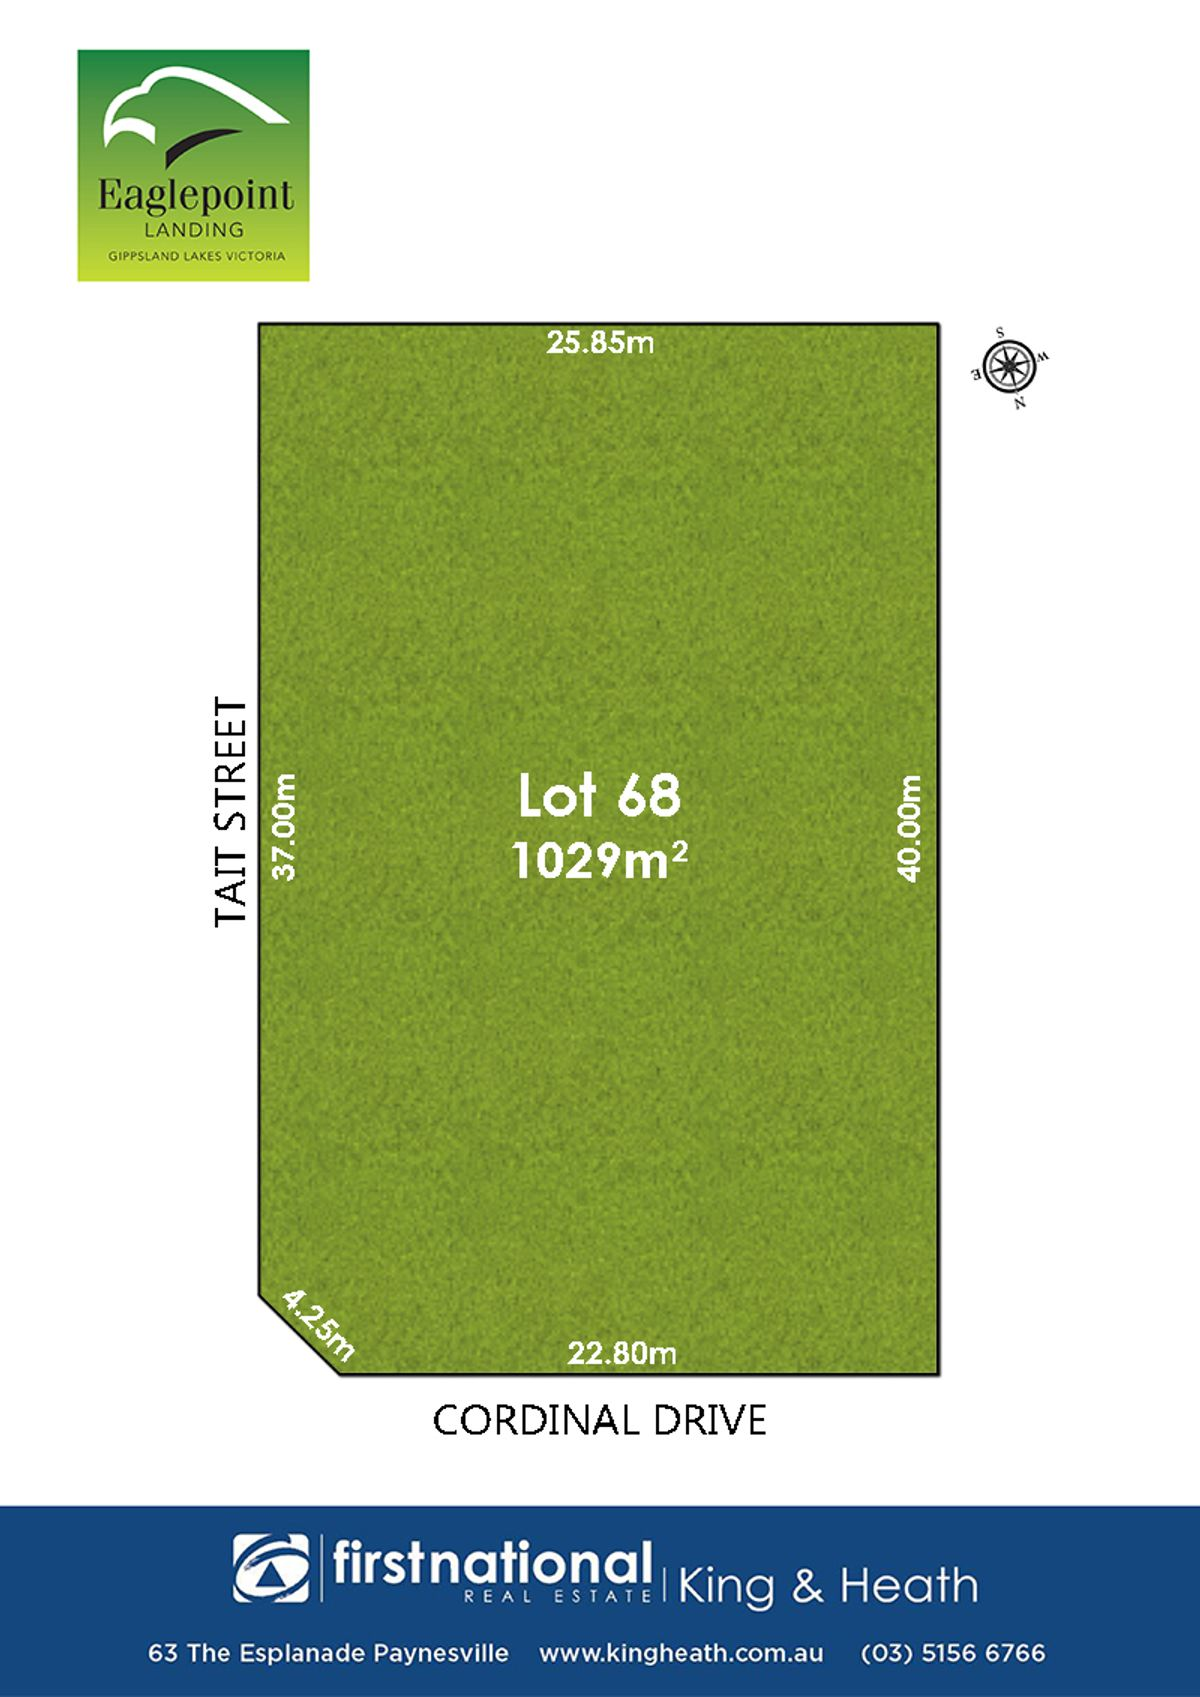 Lot 68, 34 Tait Street, Eagle Point, VIC 3878